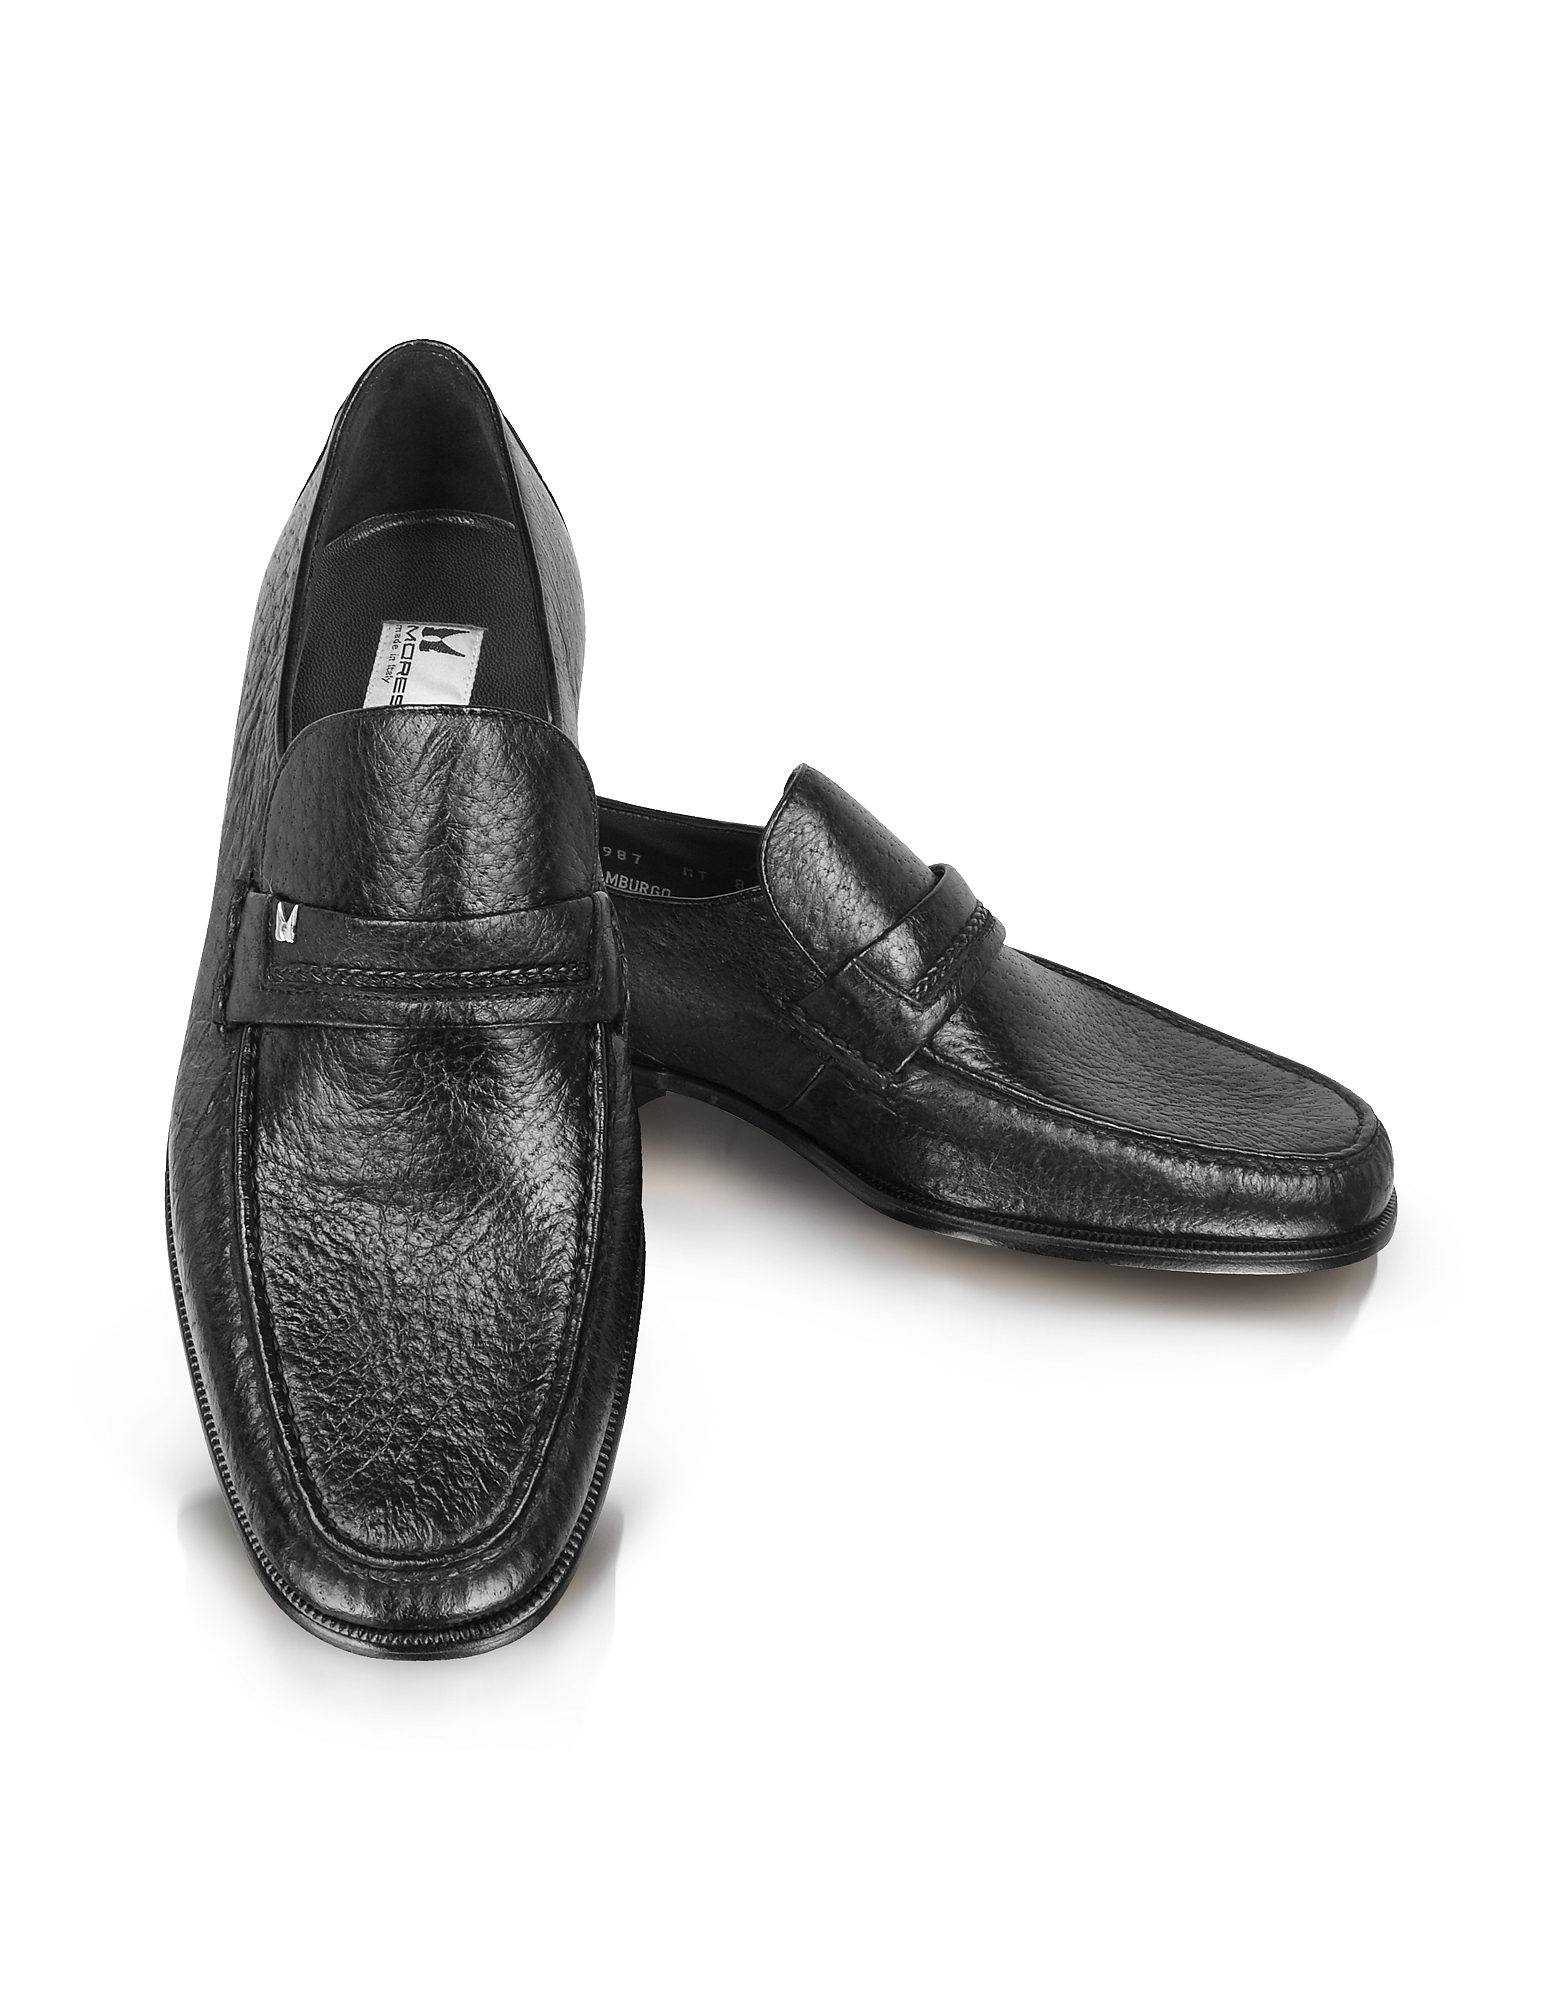 Moreschi Shoes, Amburgo - Buckle Black Loafer Shoes